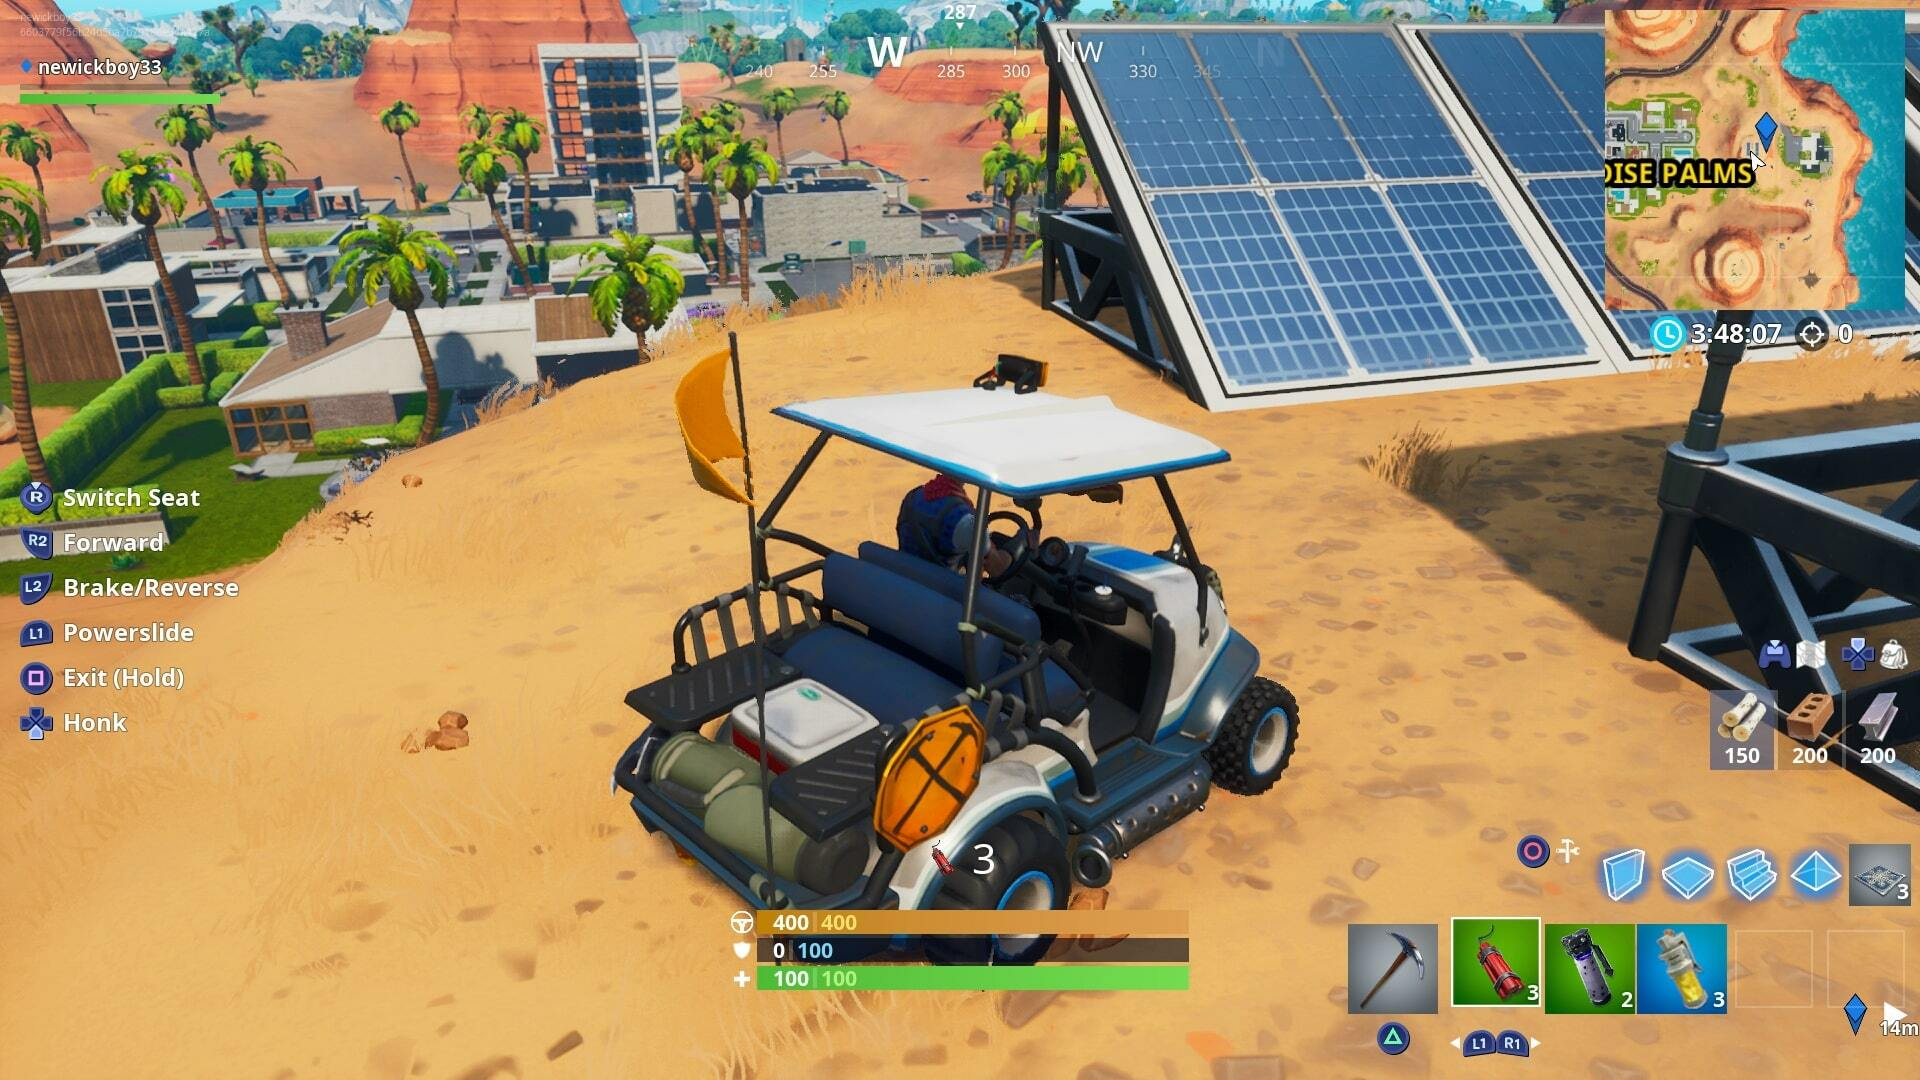 Fortnite Solar Array Locations - Visit a Solar Array in the Snow, Desert, and the Jungle